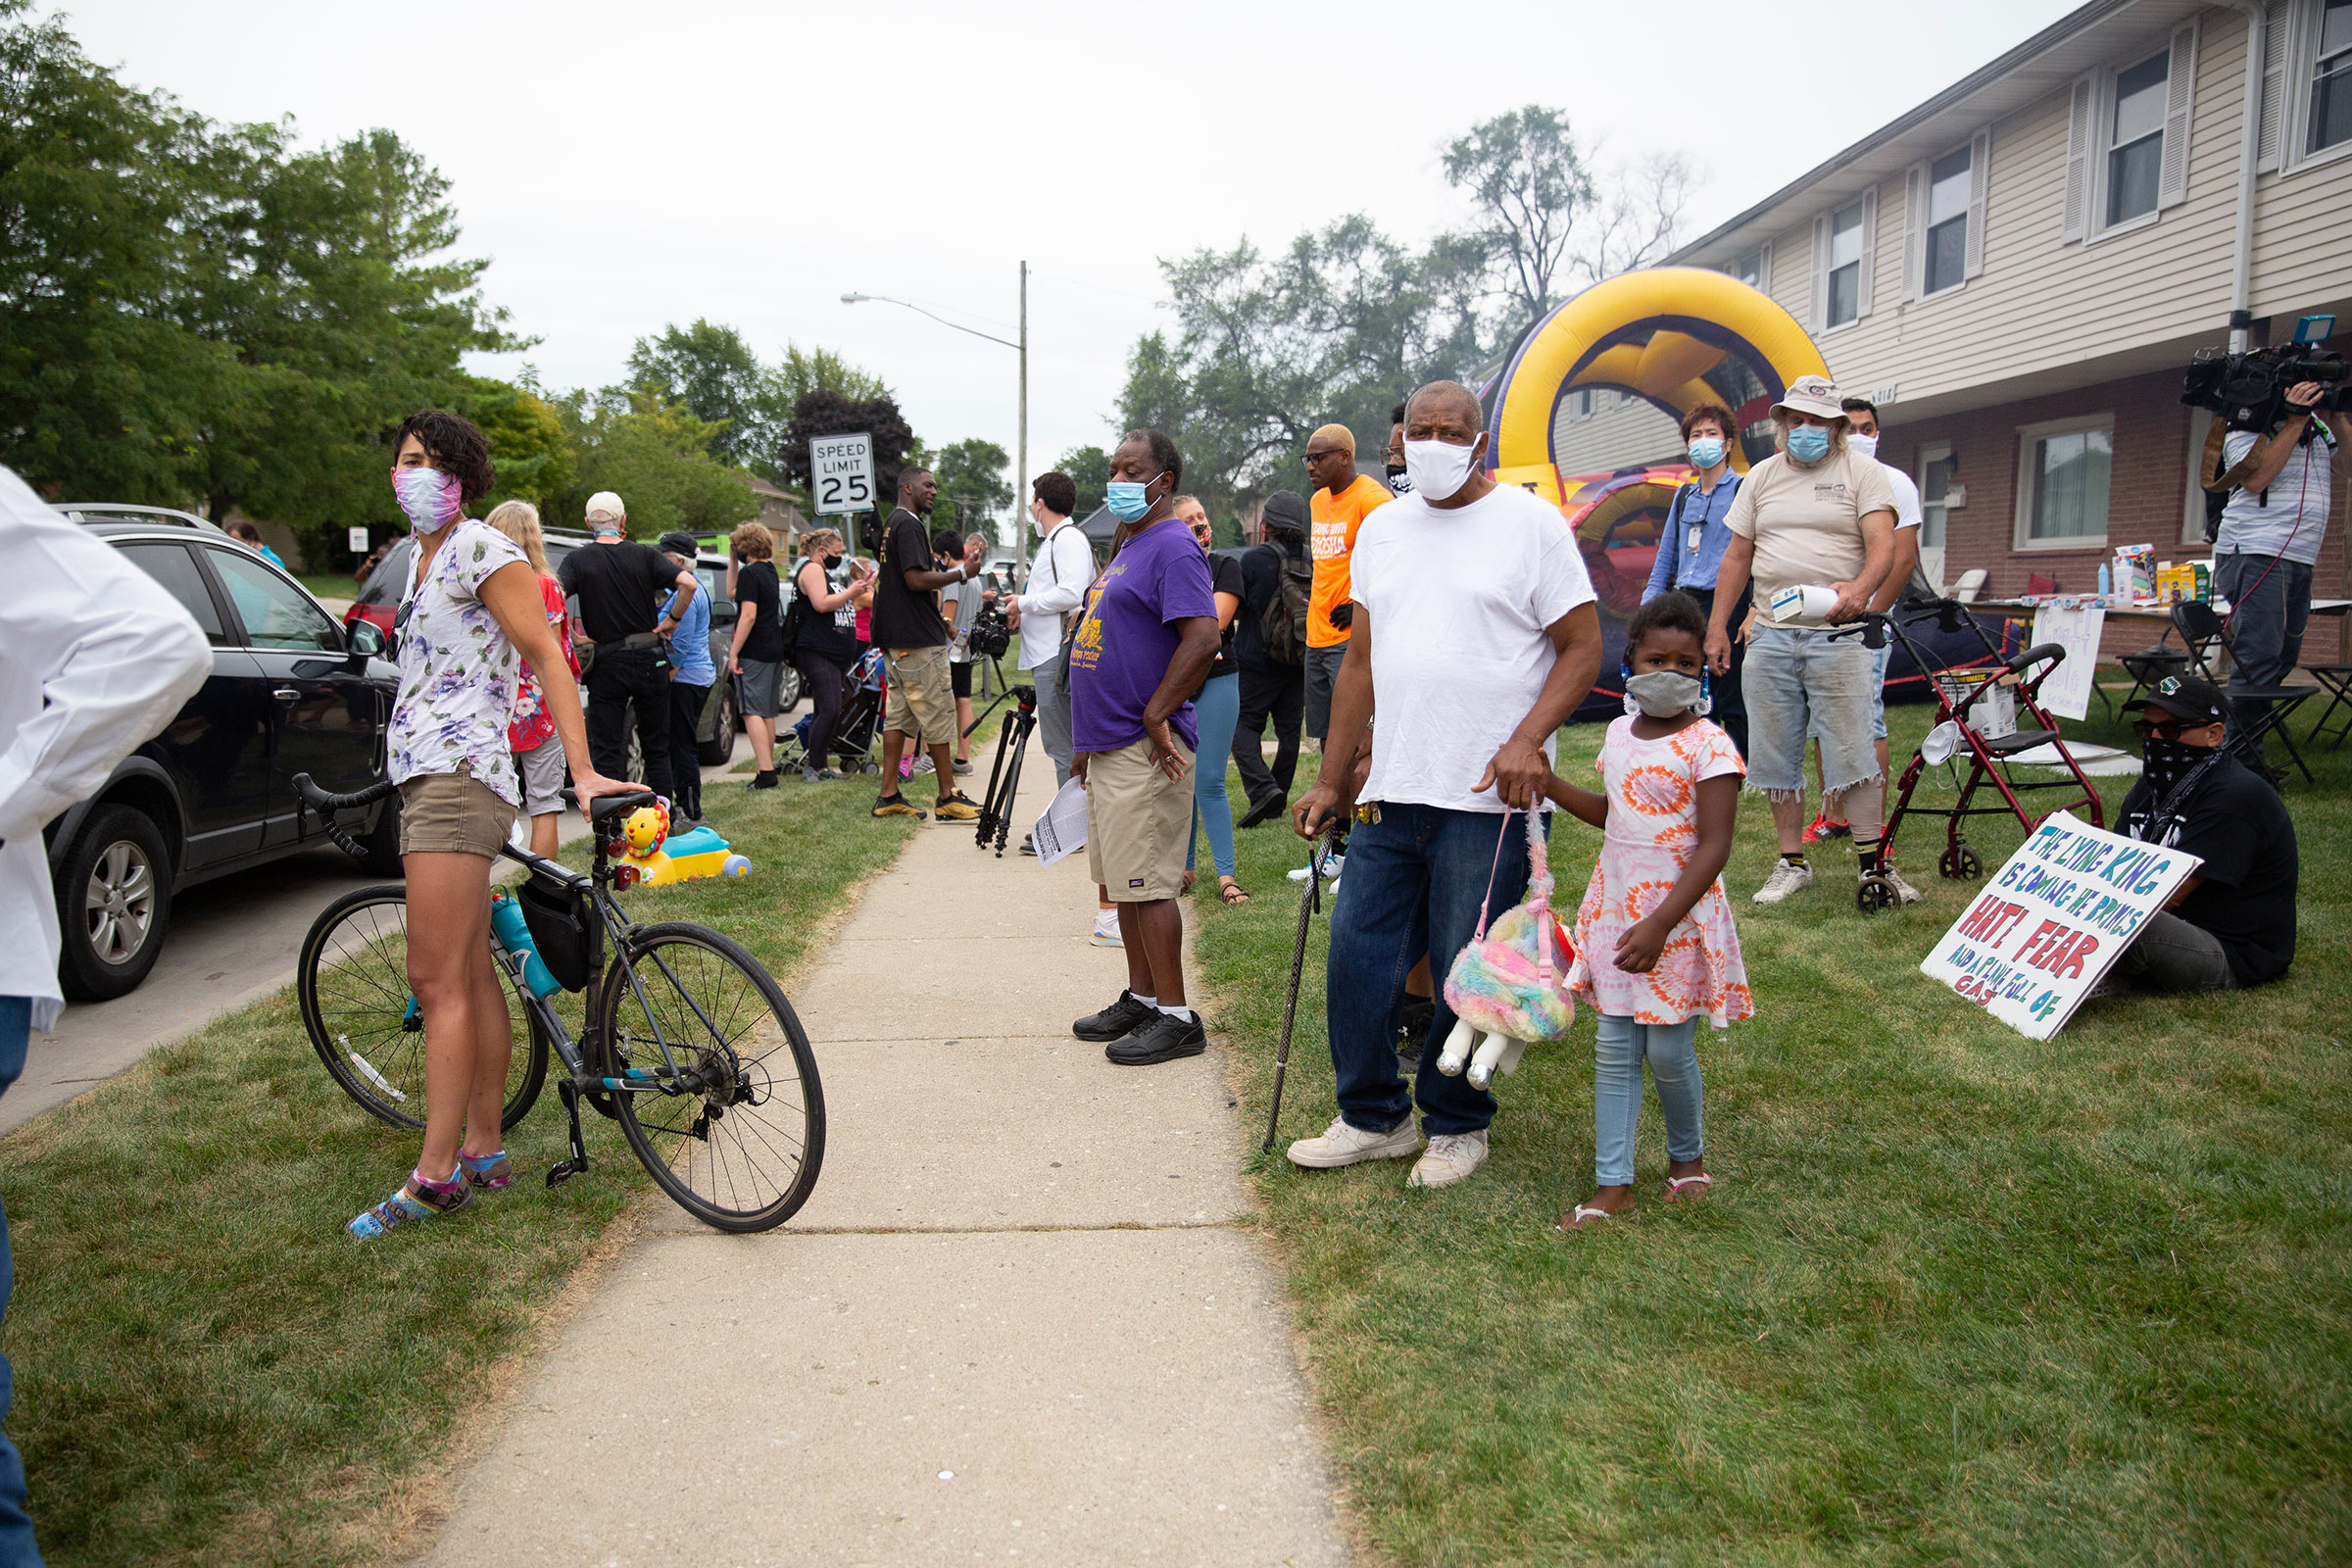 A peaceful gathering early Tuesday near the site where Jacob Blake was shot by police in Kenosha, Wis., on Sept. 1, 2020.